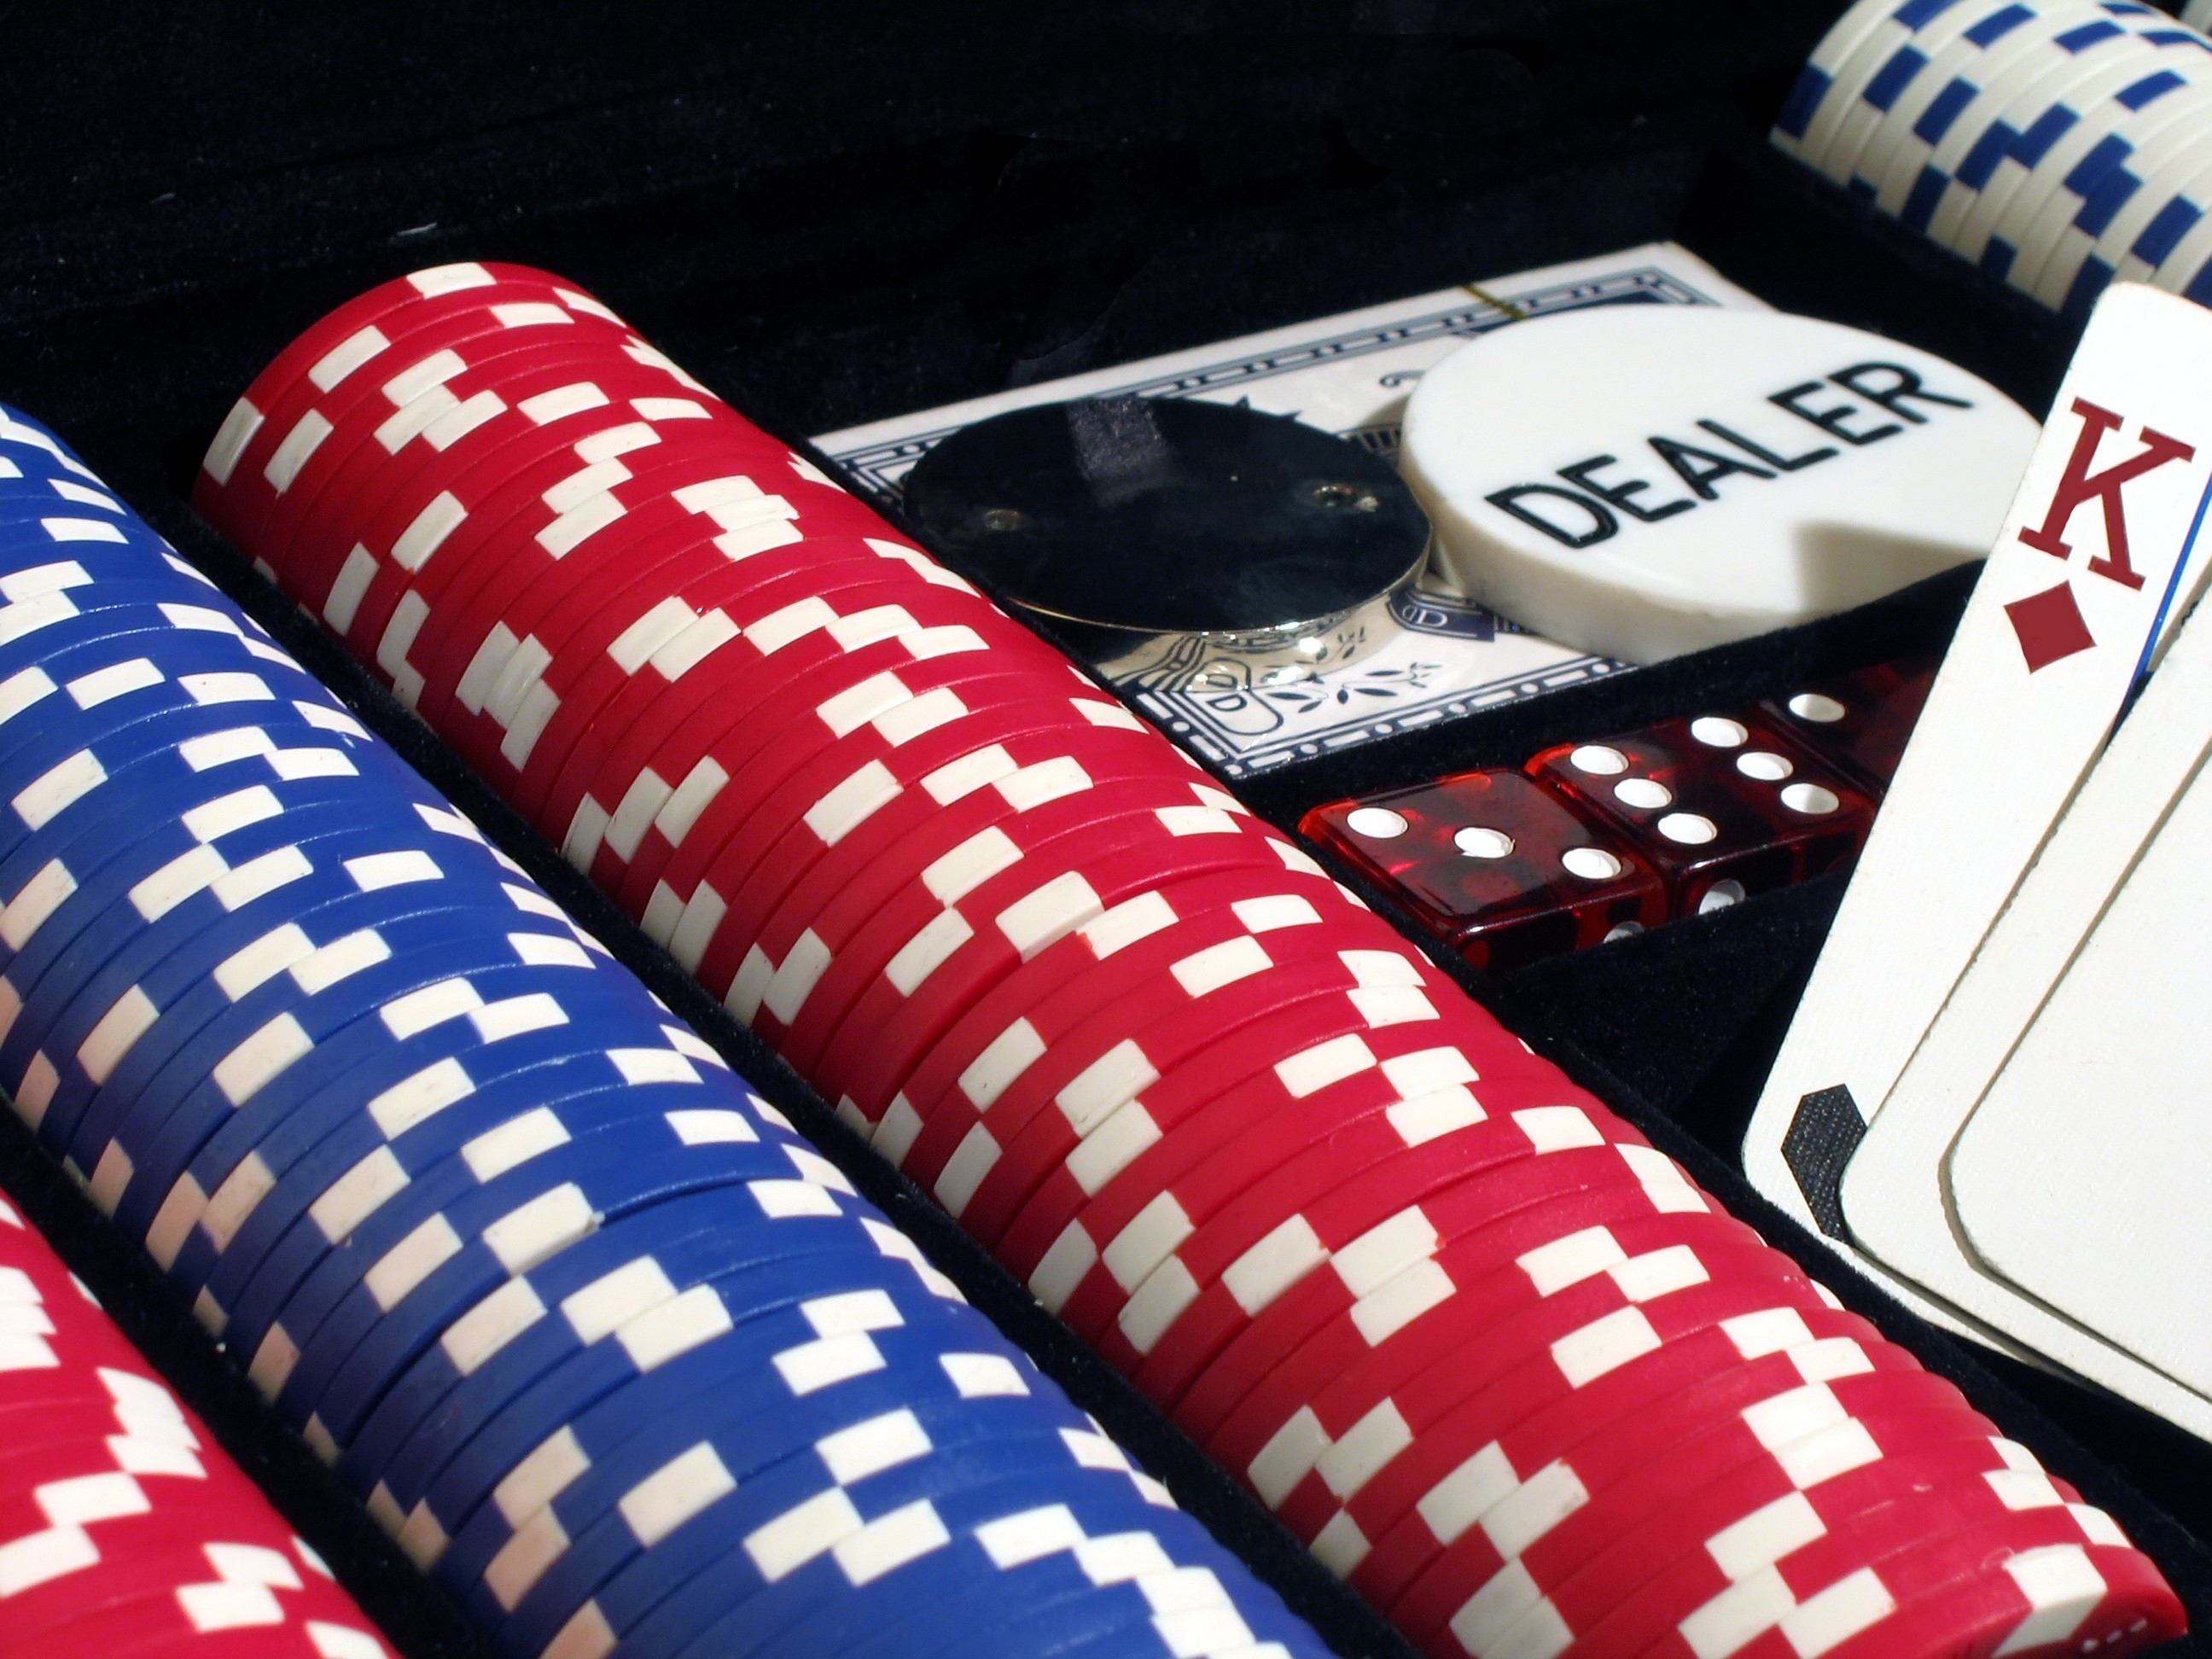 Poker chips, cards, dice